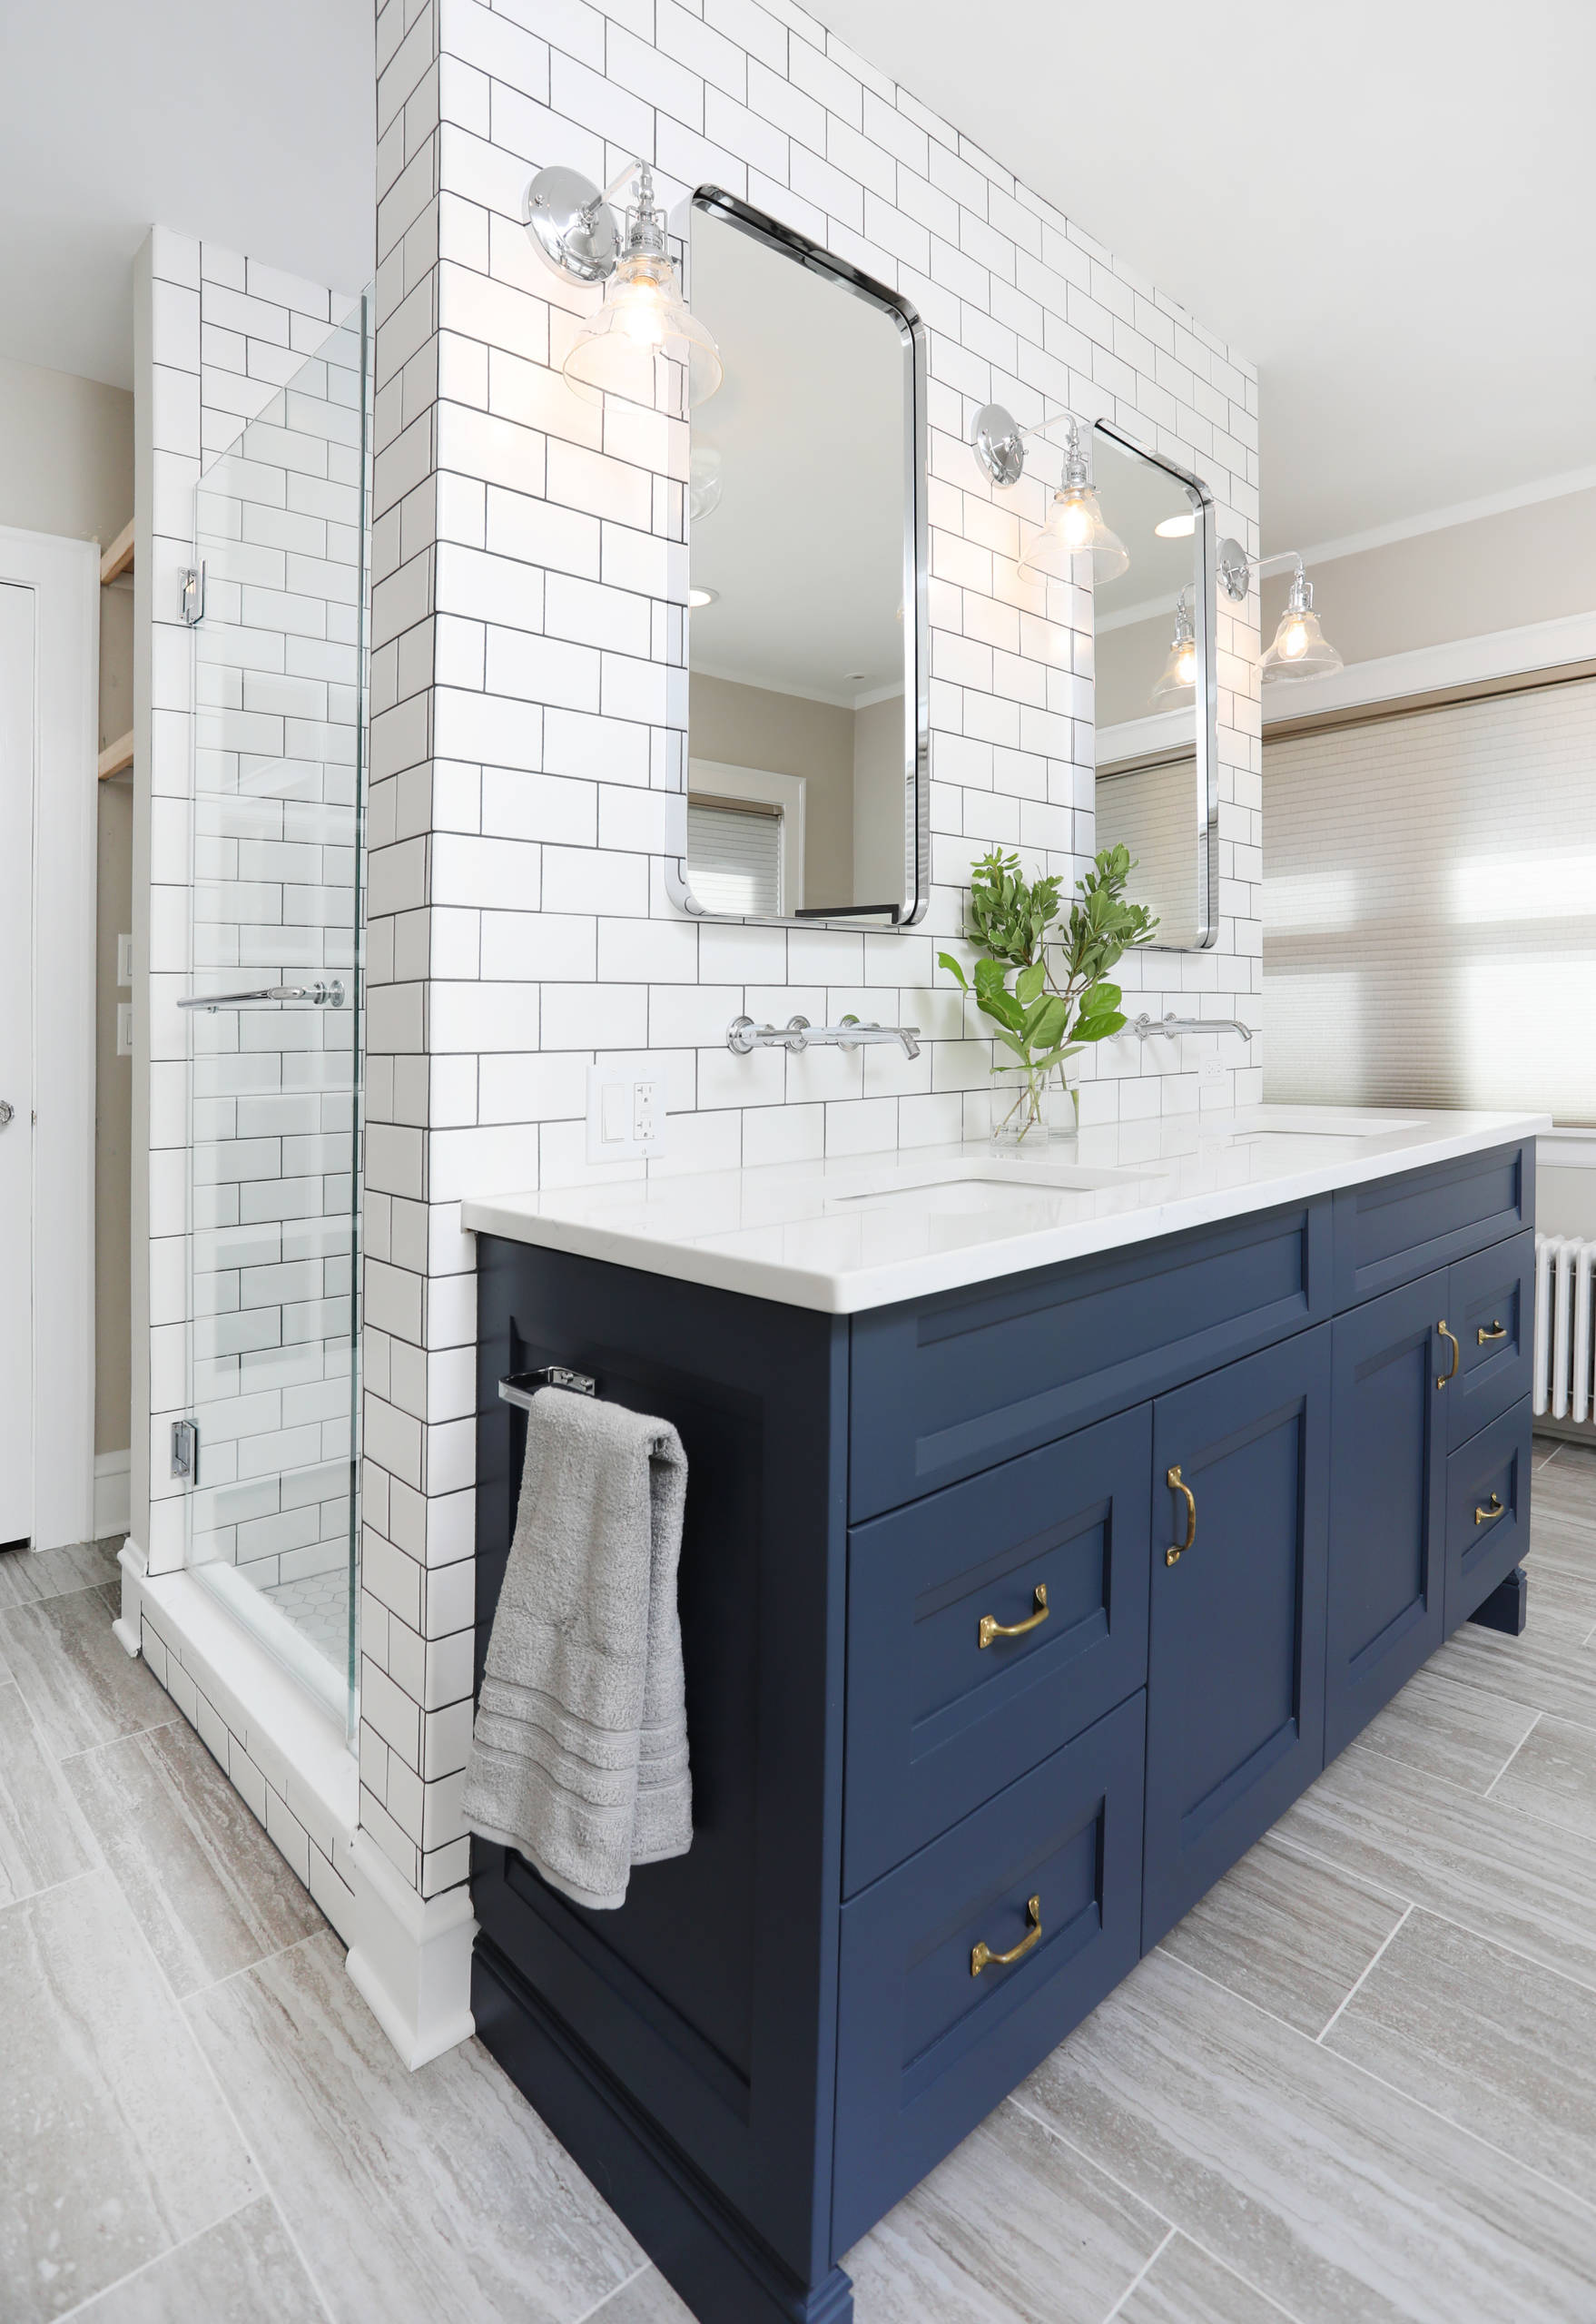 75 Beautiful Bathroom With Blue Cabinets Pictures Ideas December 2020 Houzz